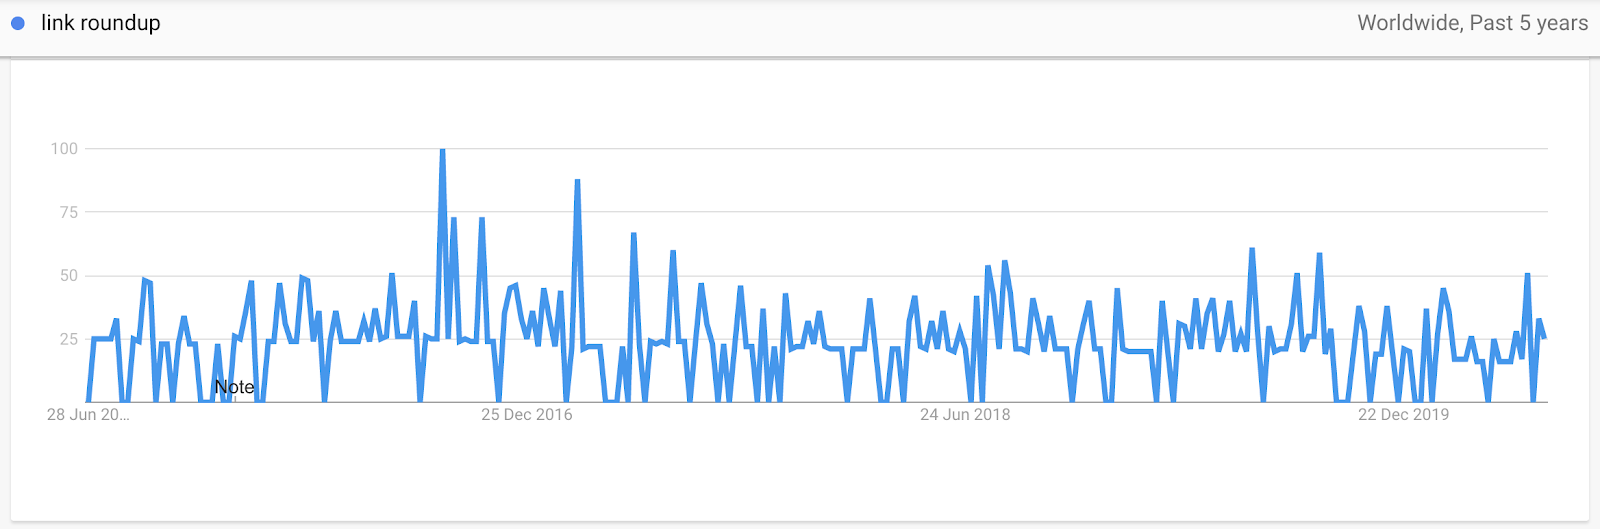 Interest for Link Roundups on Google Trends